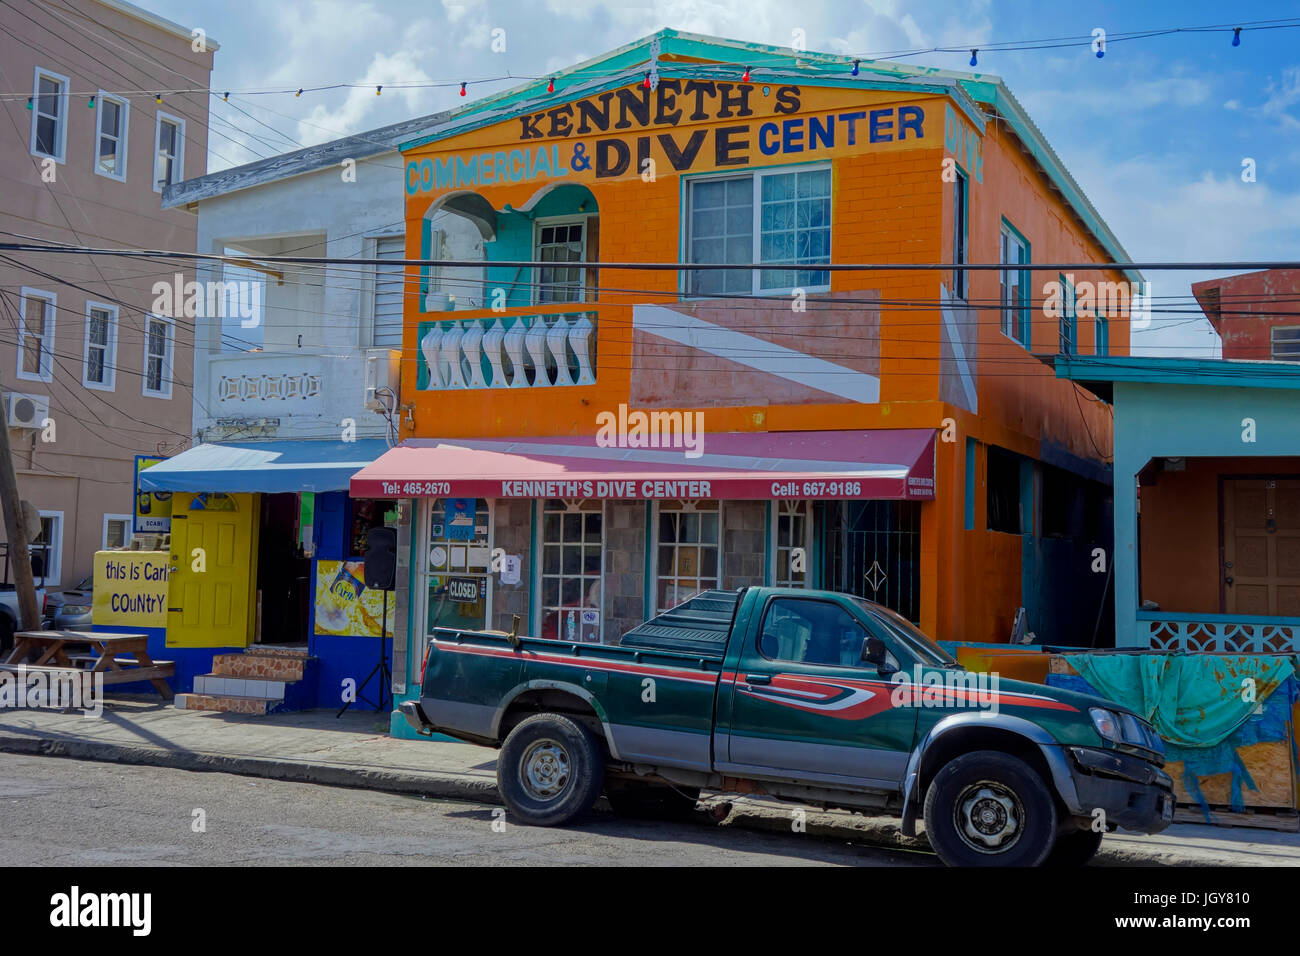 Kenneths Dive Centre, St Kitts, Caribbean, West Indies - Stock Image